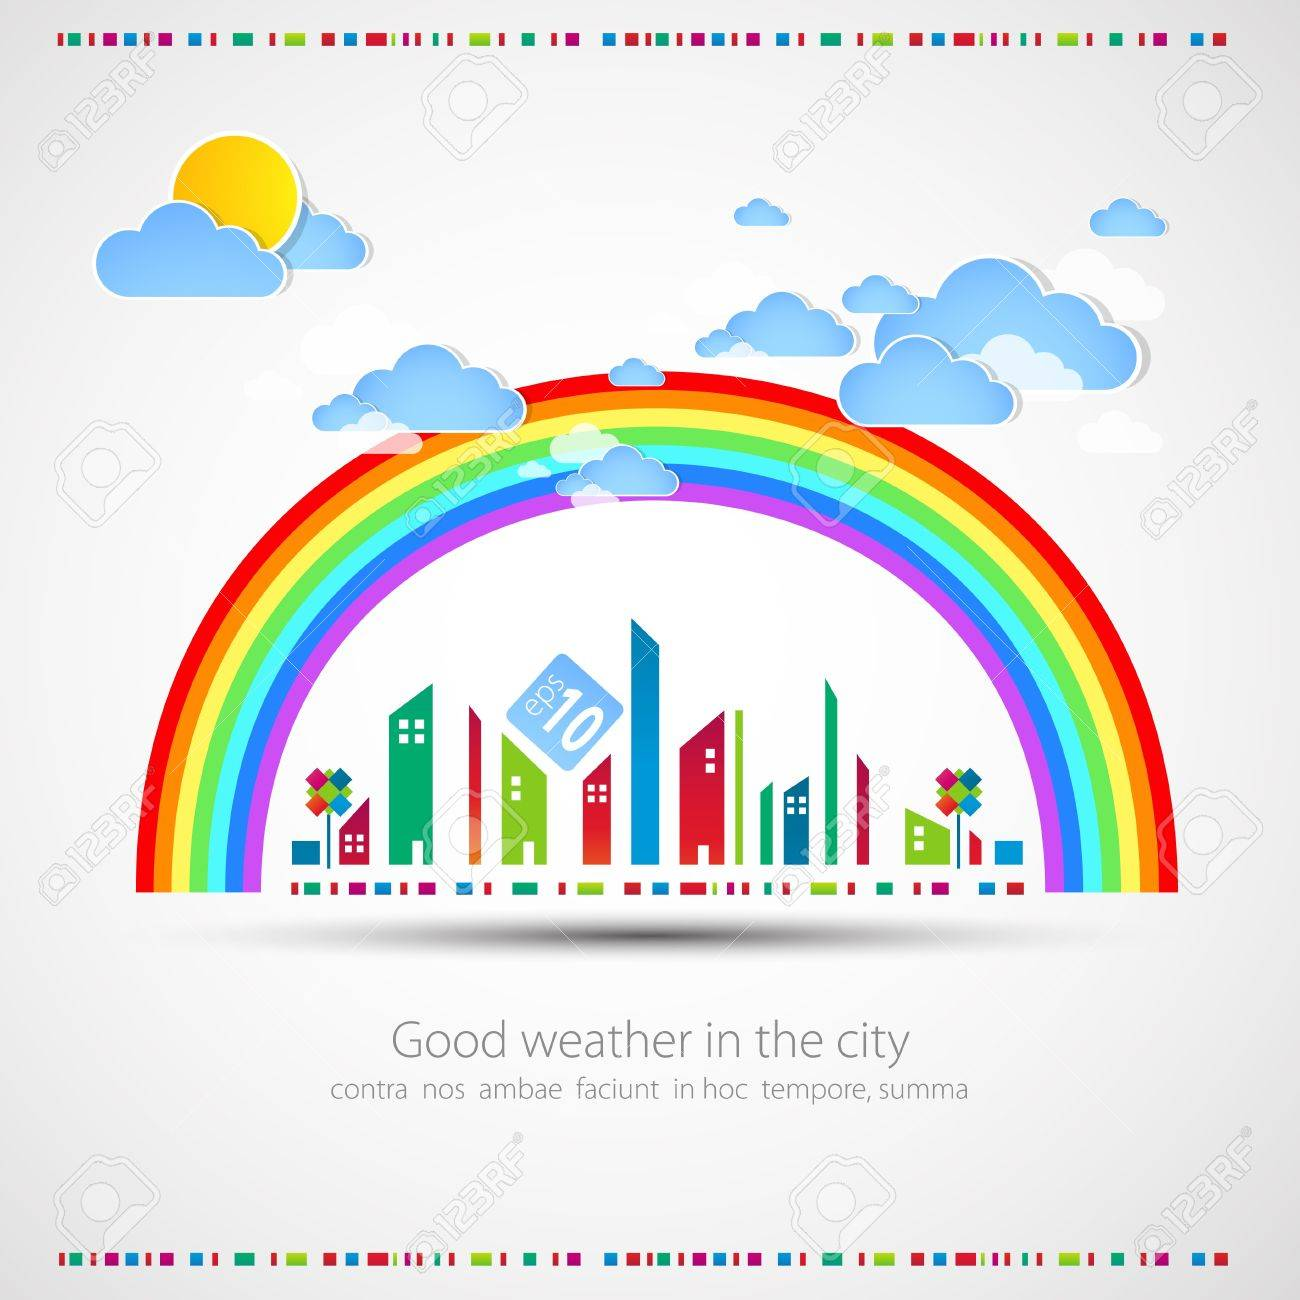 City theme background illustration Stock Vector - 13721775